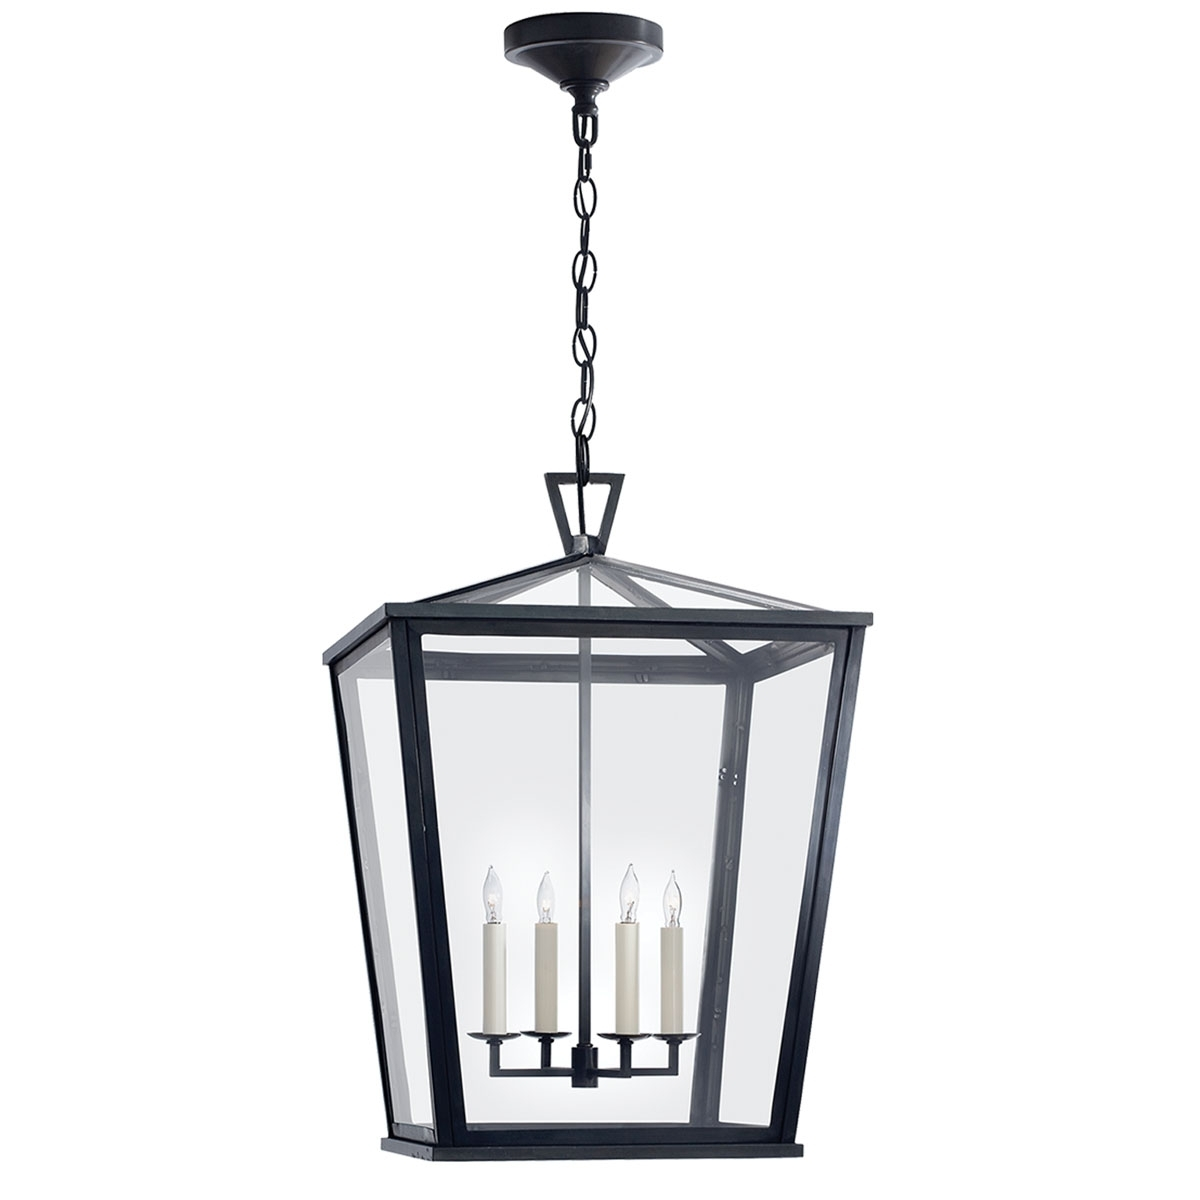 Charming Large Outdoor Hanging Chandelier 23 Astonishing Mini Pertaining To Latest Large Outdoor Electric Lanterns (View 5 of 20)